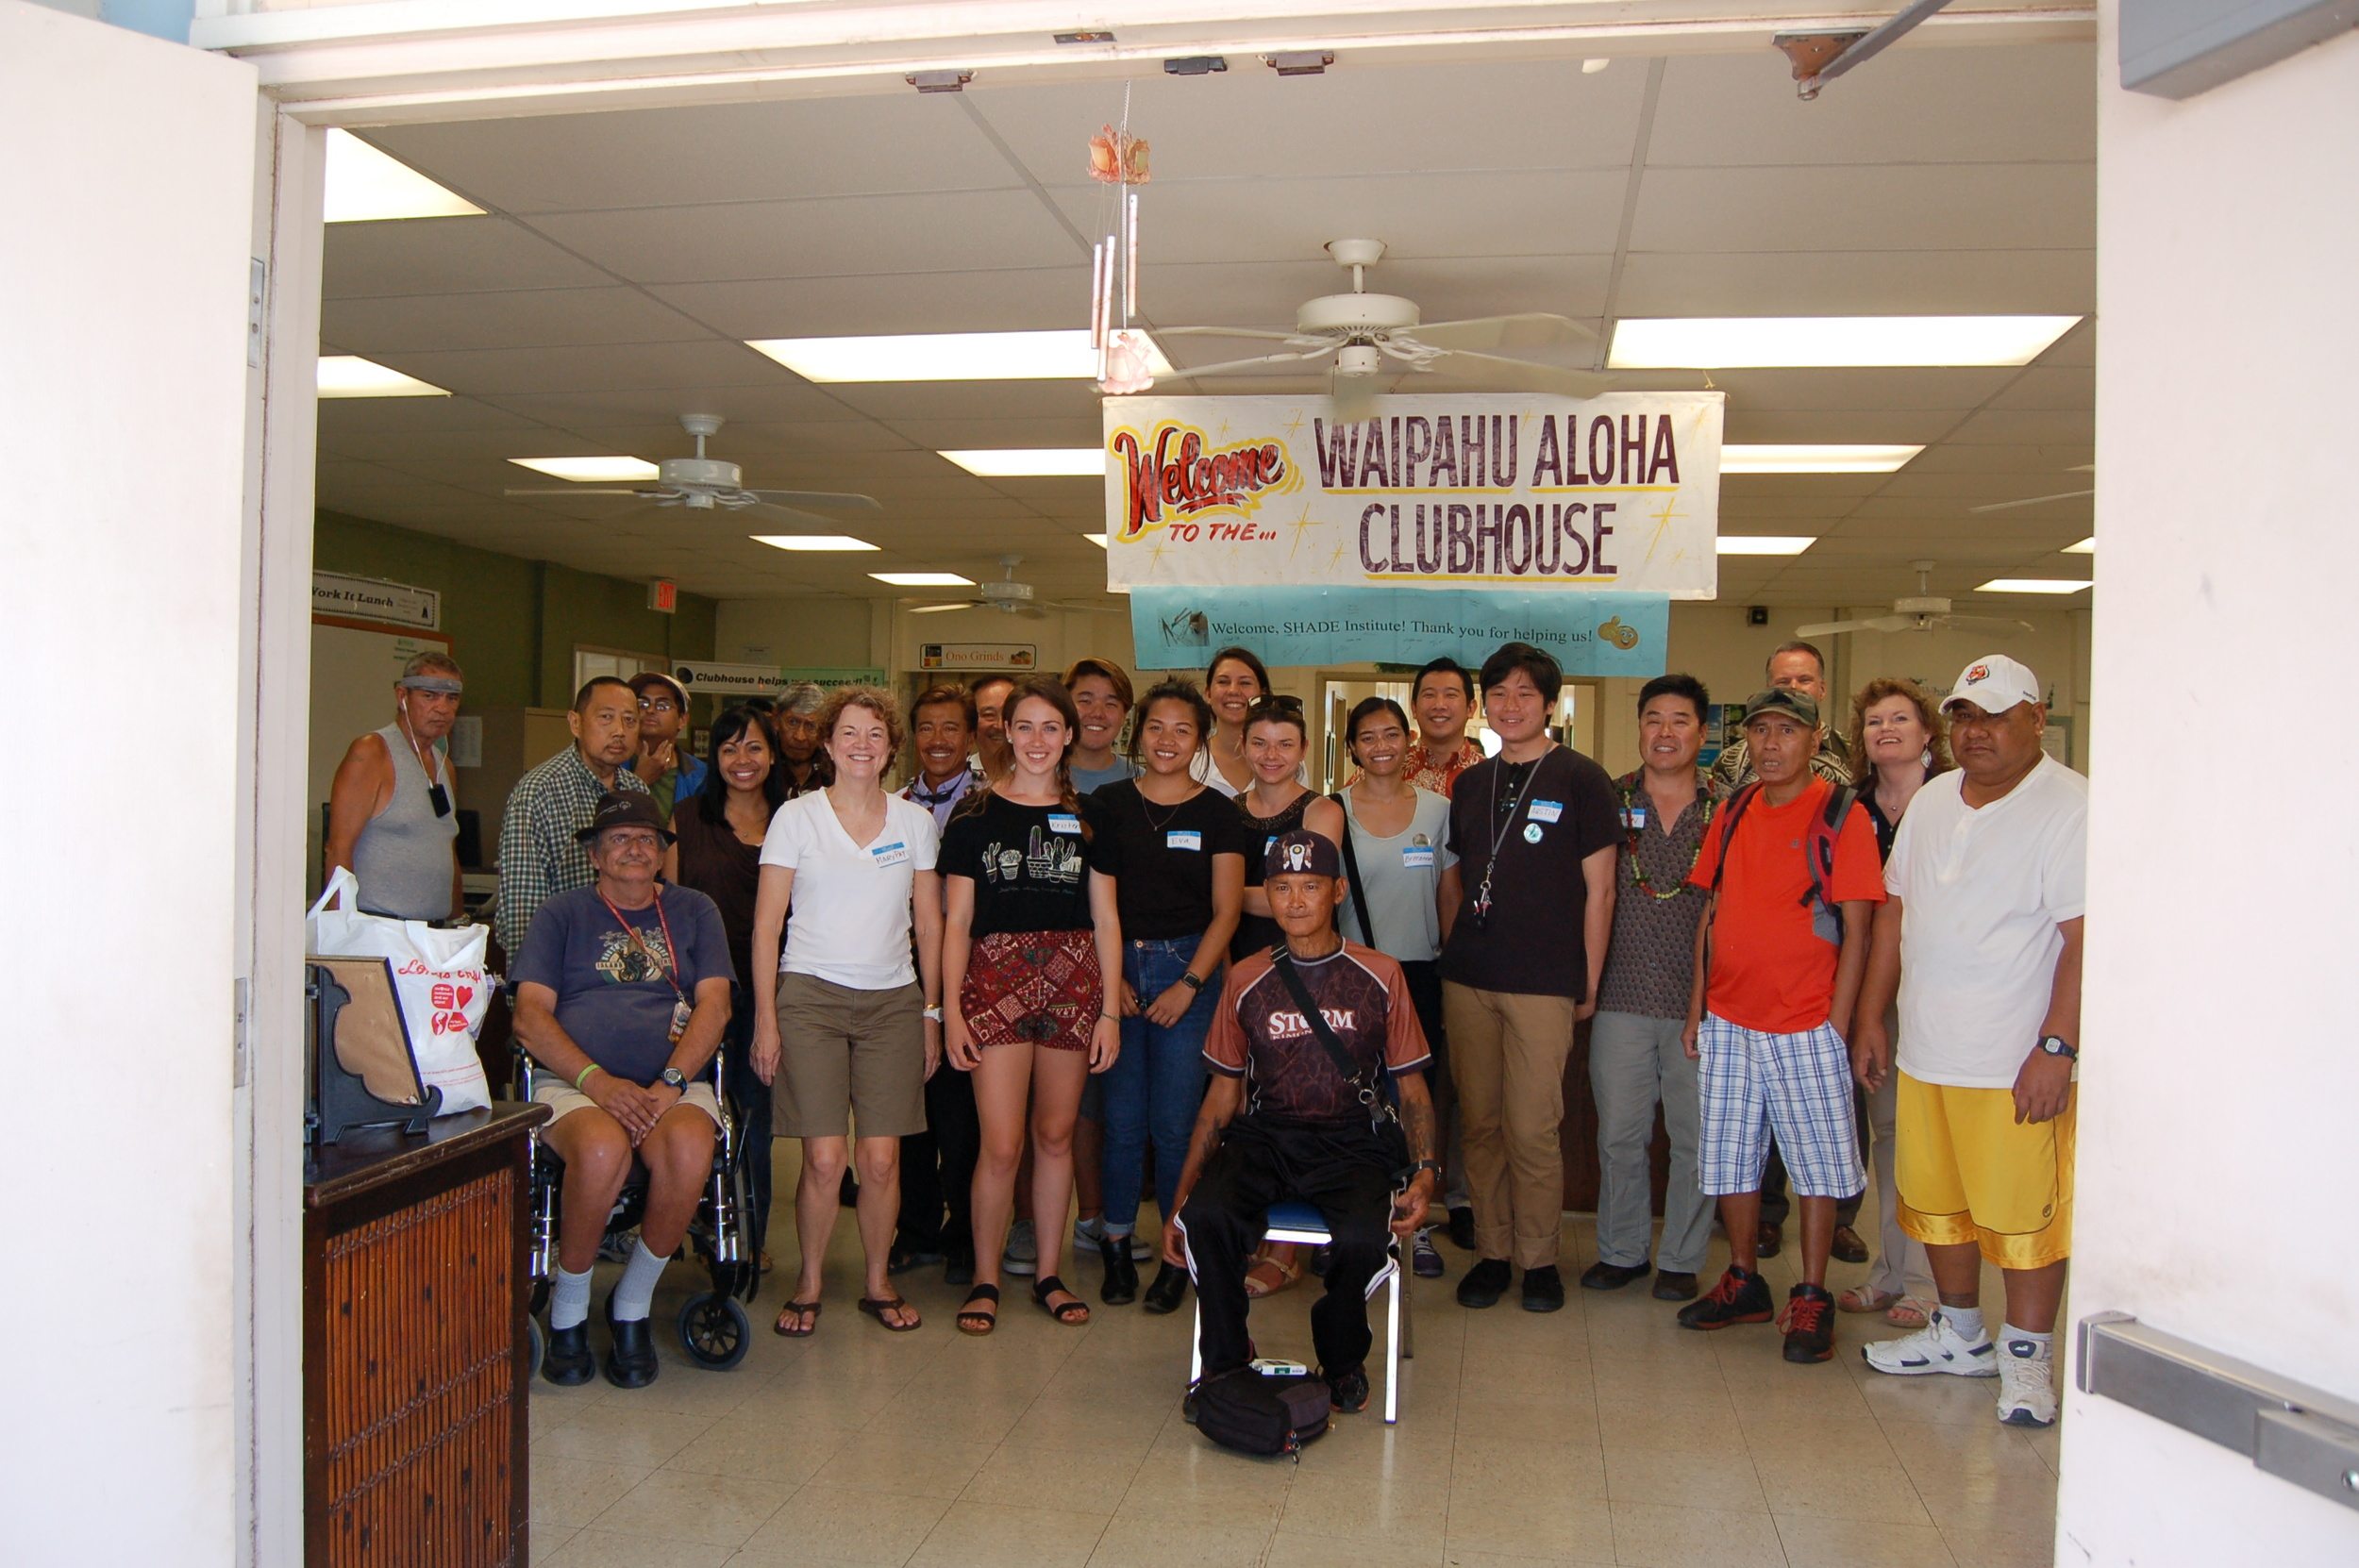 Members and SHADE interns at the Waipahu Aloha Clubhouse